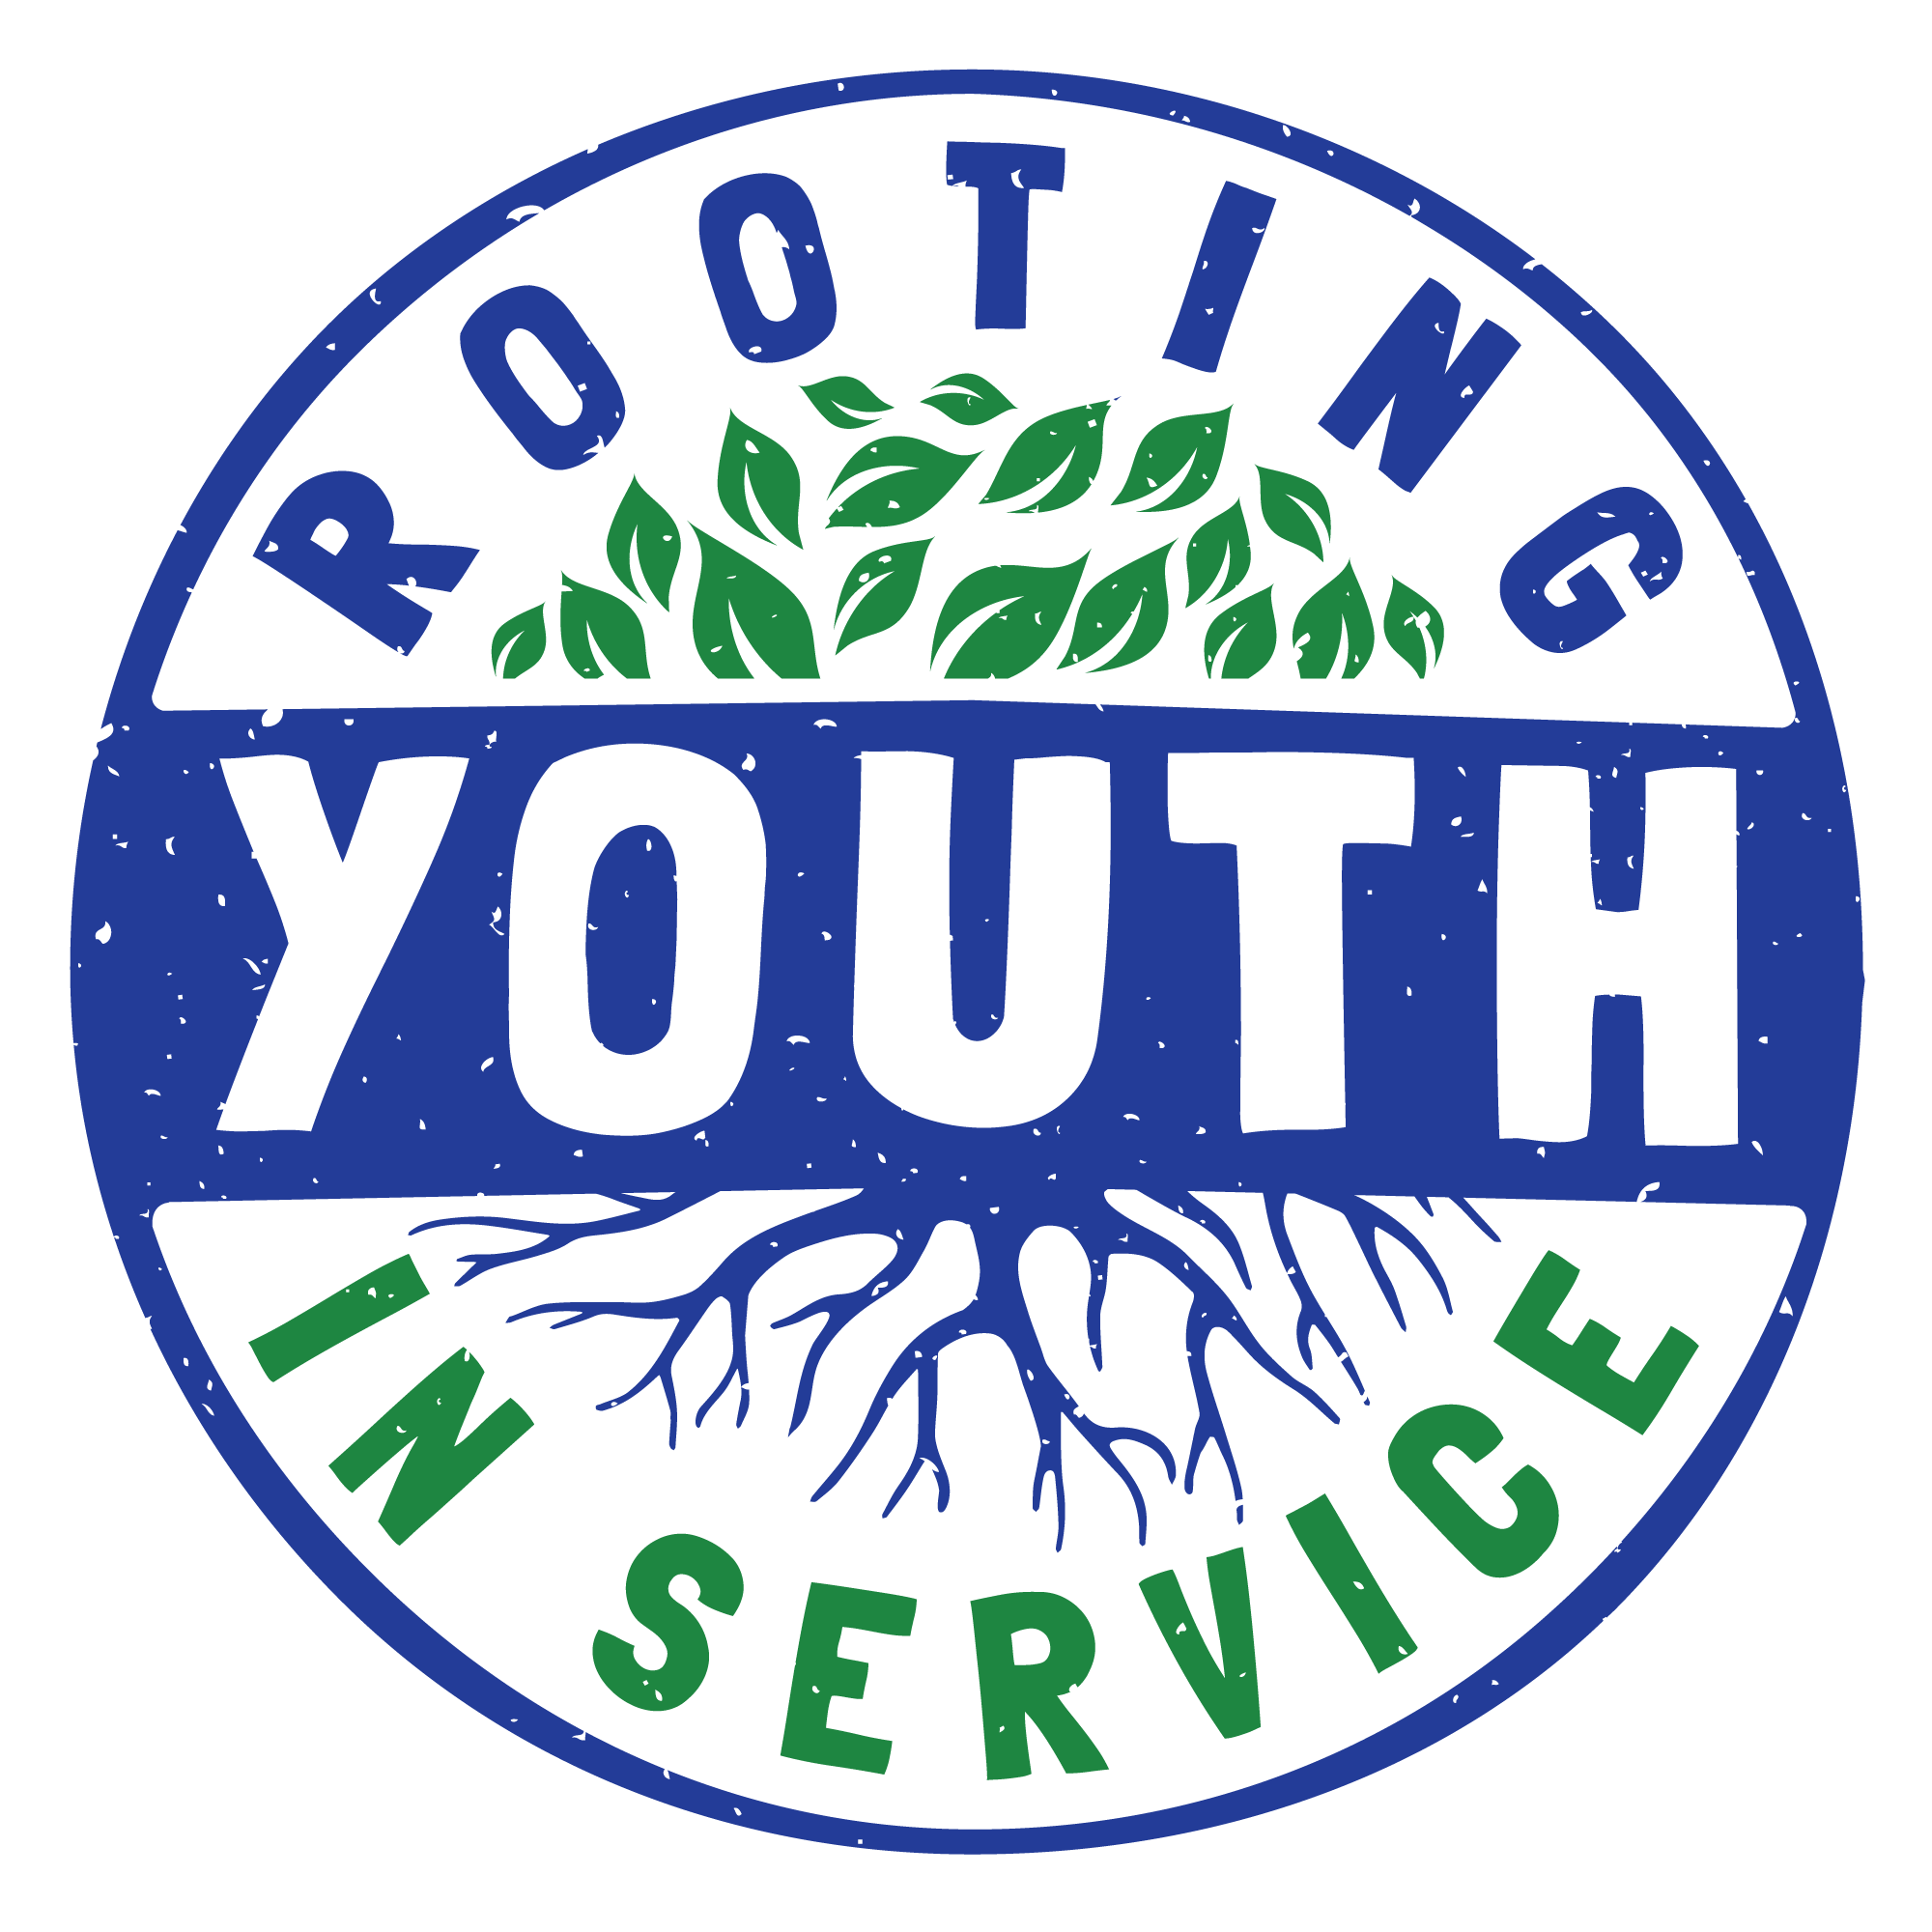 Rooting-Youth-in-Service-Logo-COLOR.png